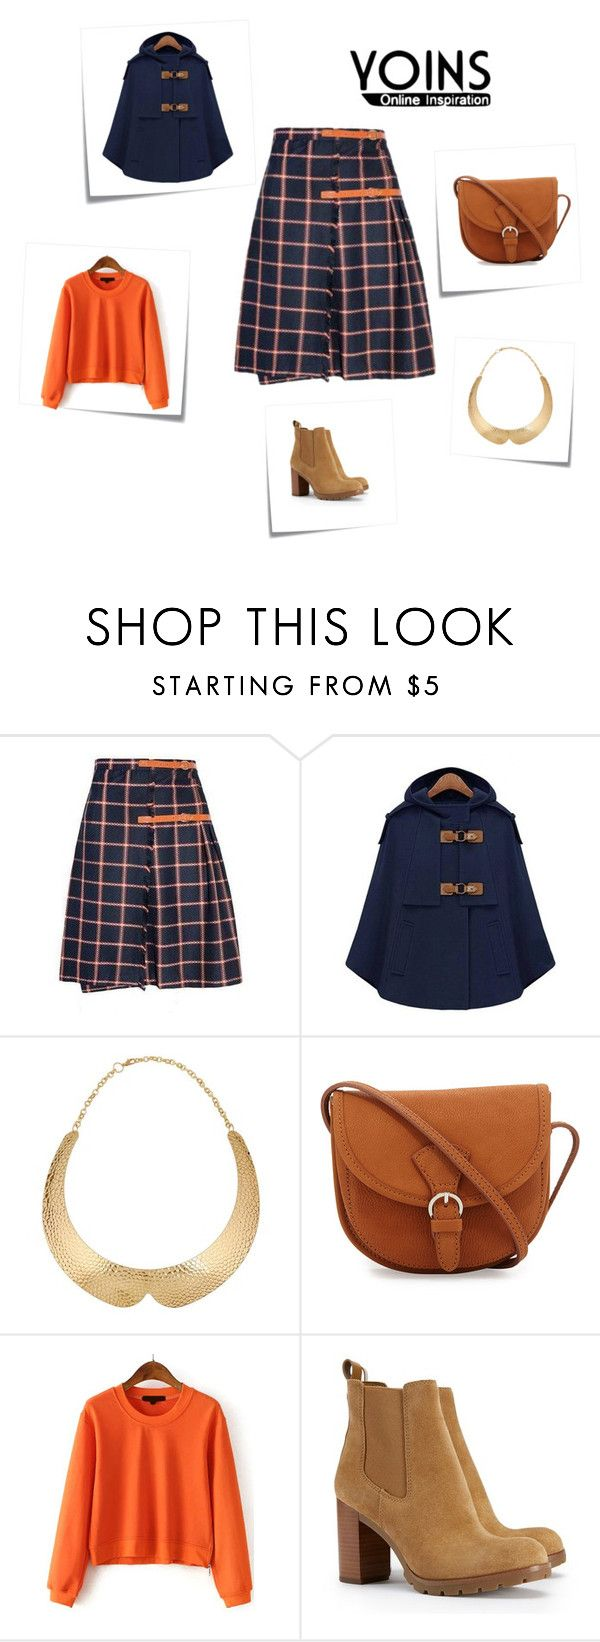 """""""Senza titolo #64"""" by lunkhead on Polyvore featuring moda, Post-It, Tory Burch e yoins"""